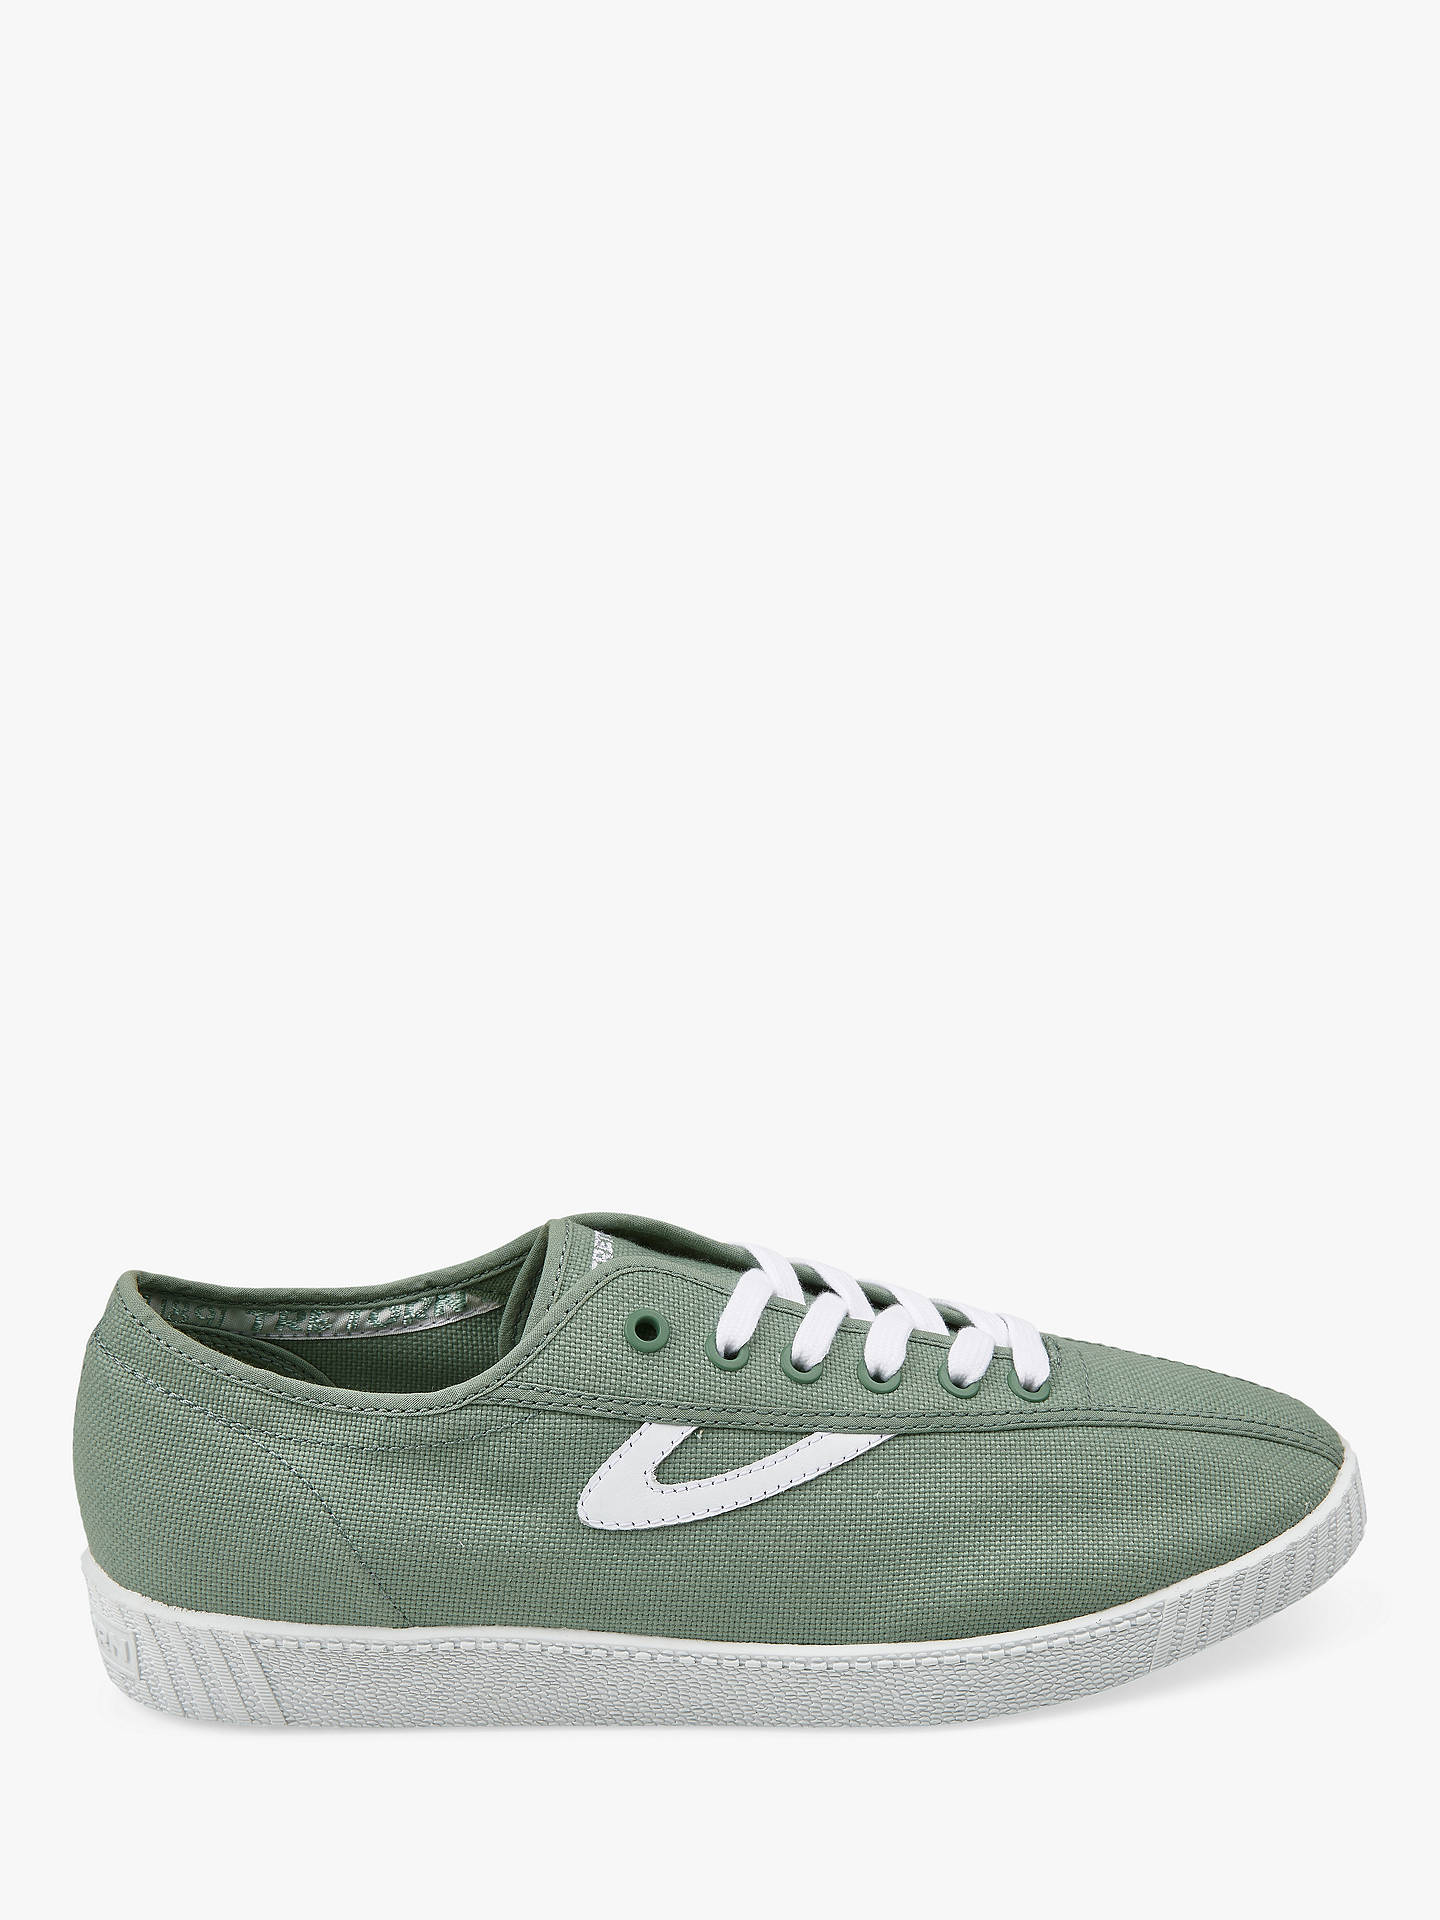 promo code 900f9 19706 Buy Tretorn Nylite Trainers, Seagrass White, 7 Online at johnlewis.com ...